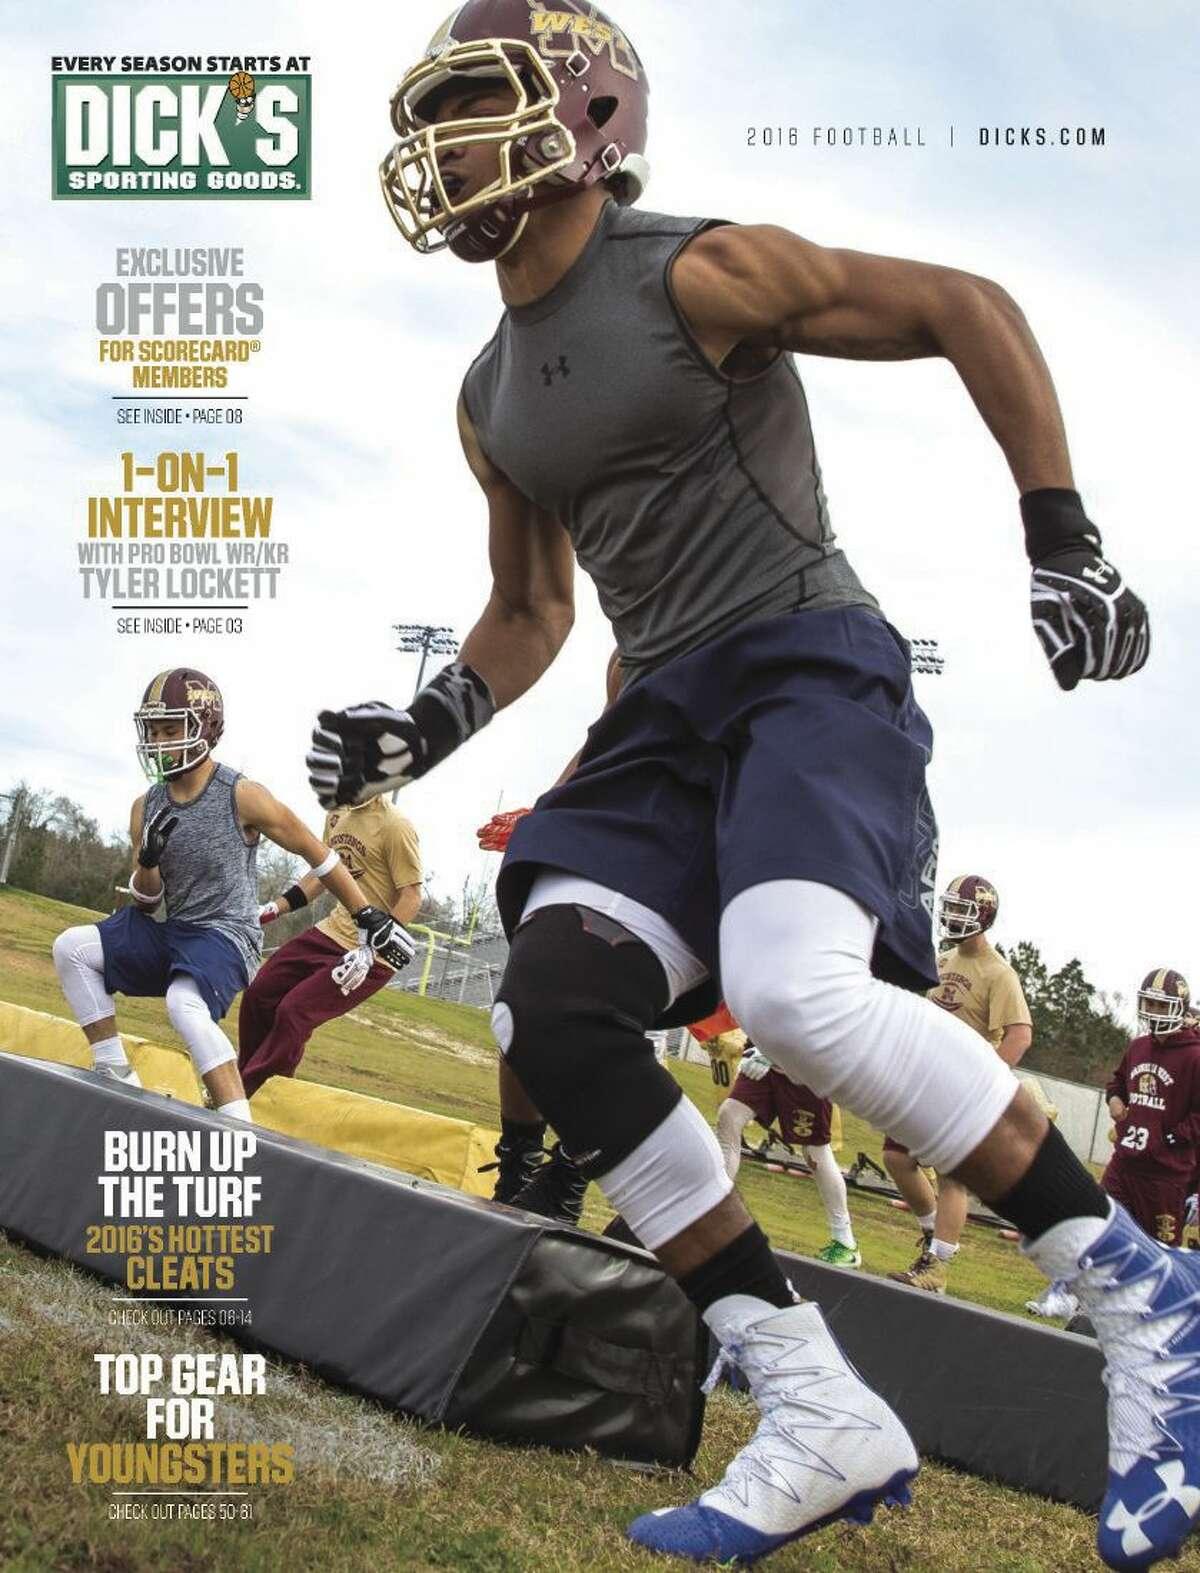 Cover photo of the 2016 DICK's Sporting Goods football catalog featuring Magnolia West players.